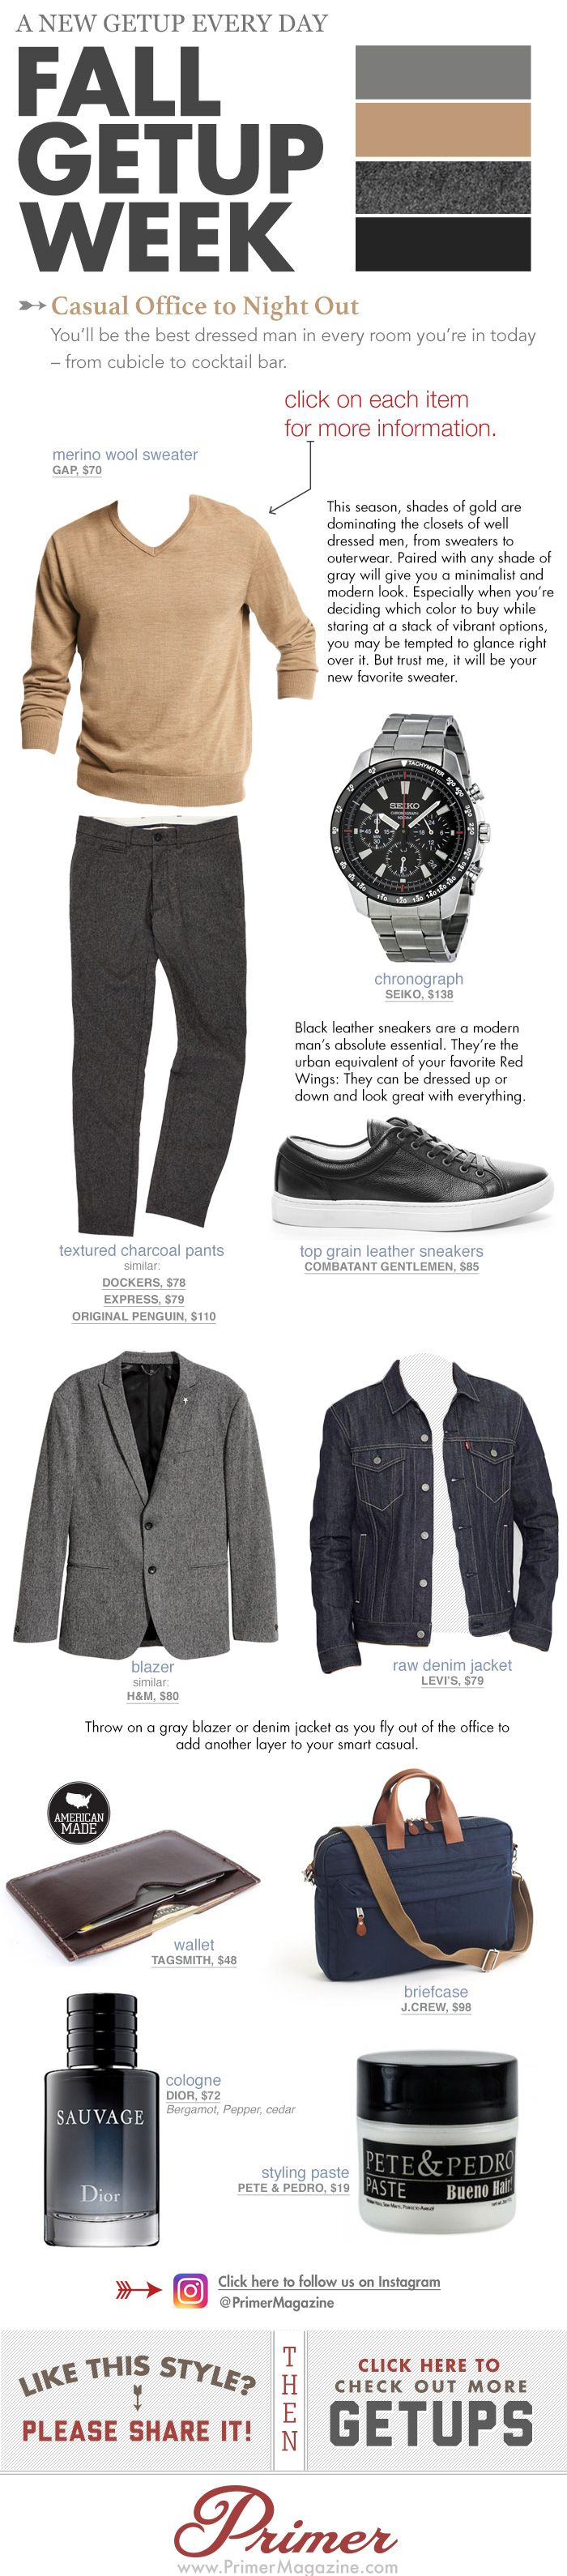 Thanks to Primer Magazine for including my Dark Brown Leather Flat Wallet in their Fall Getup.